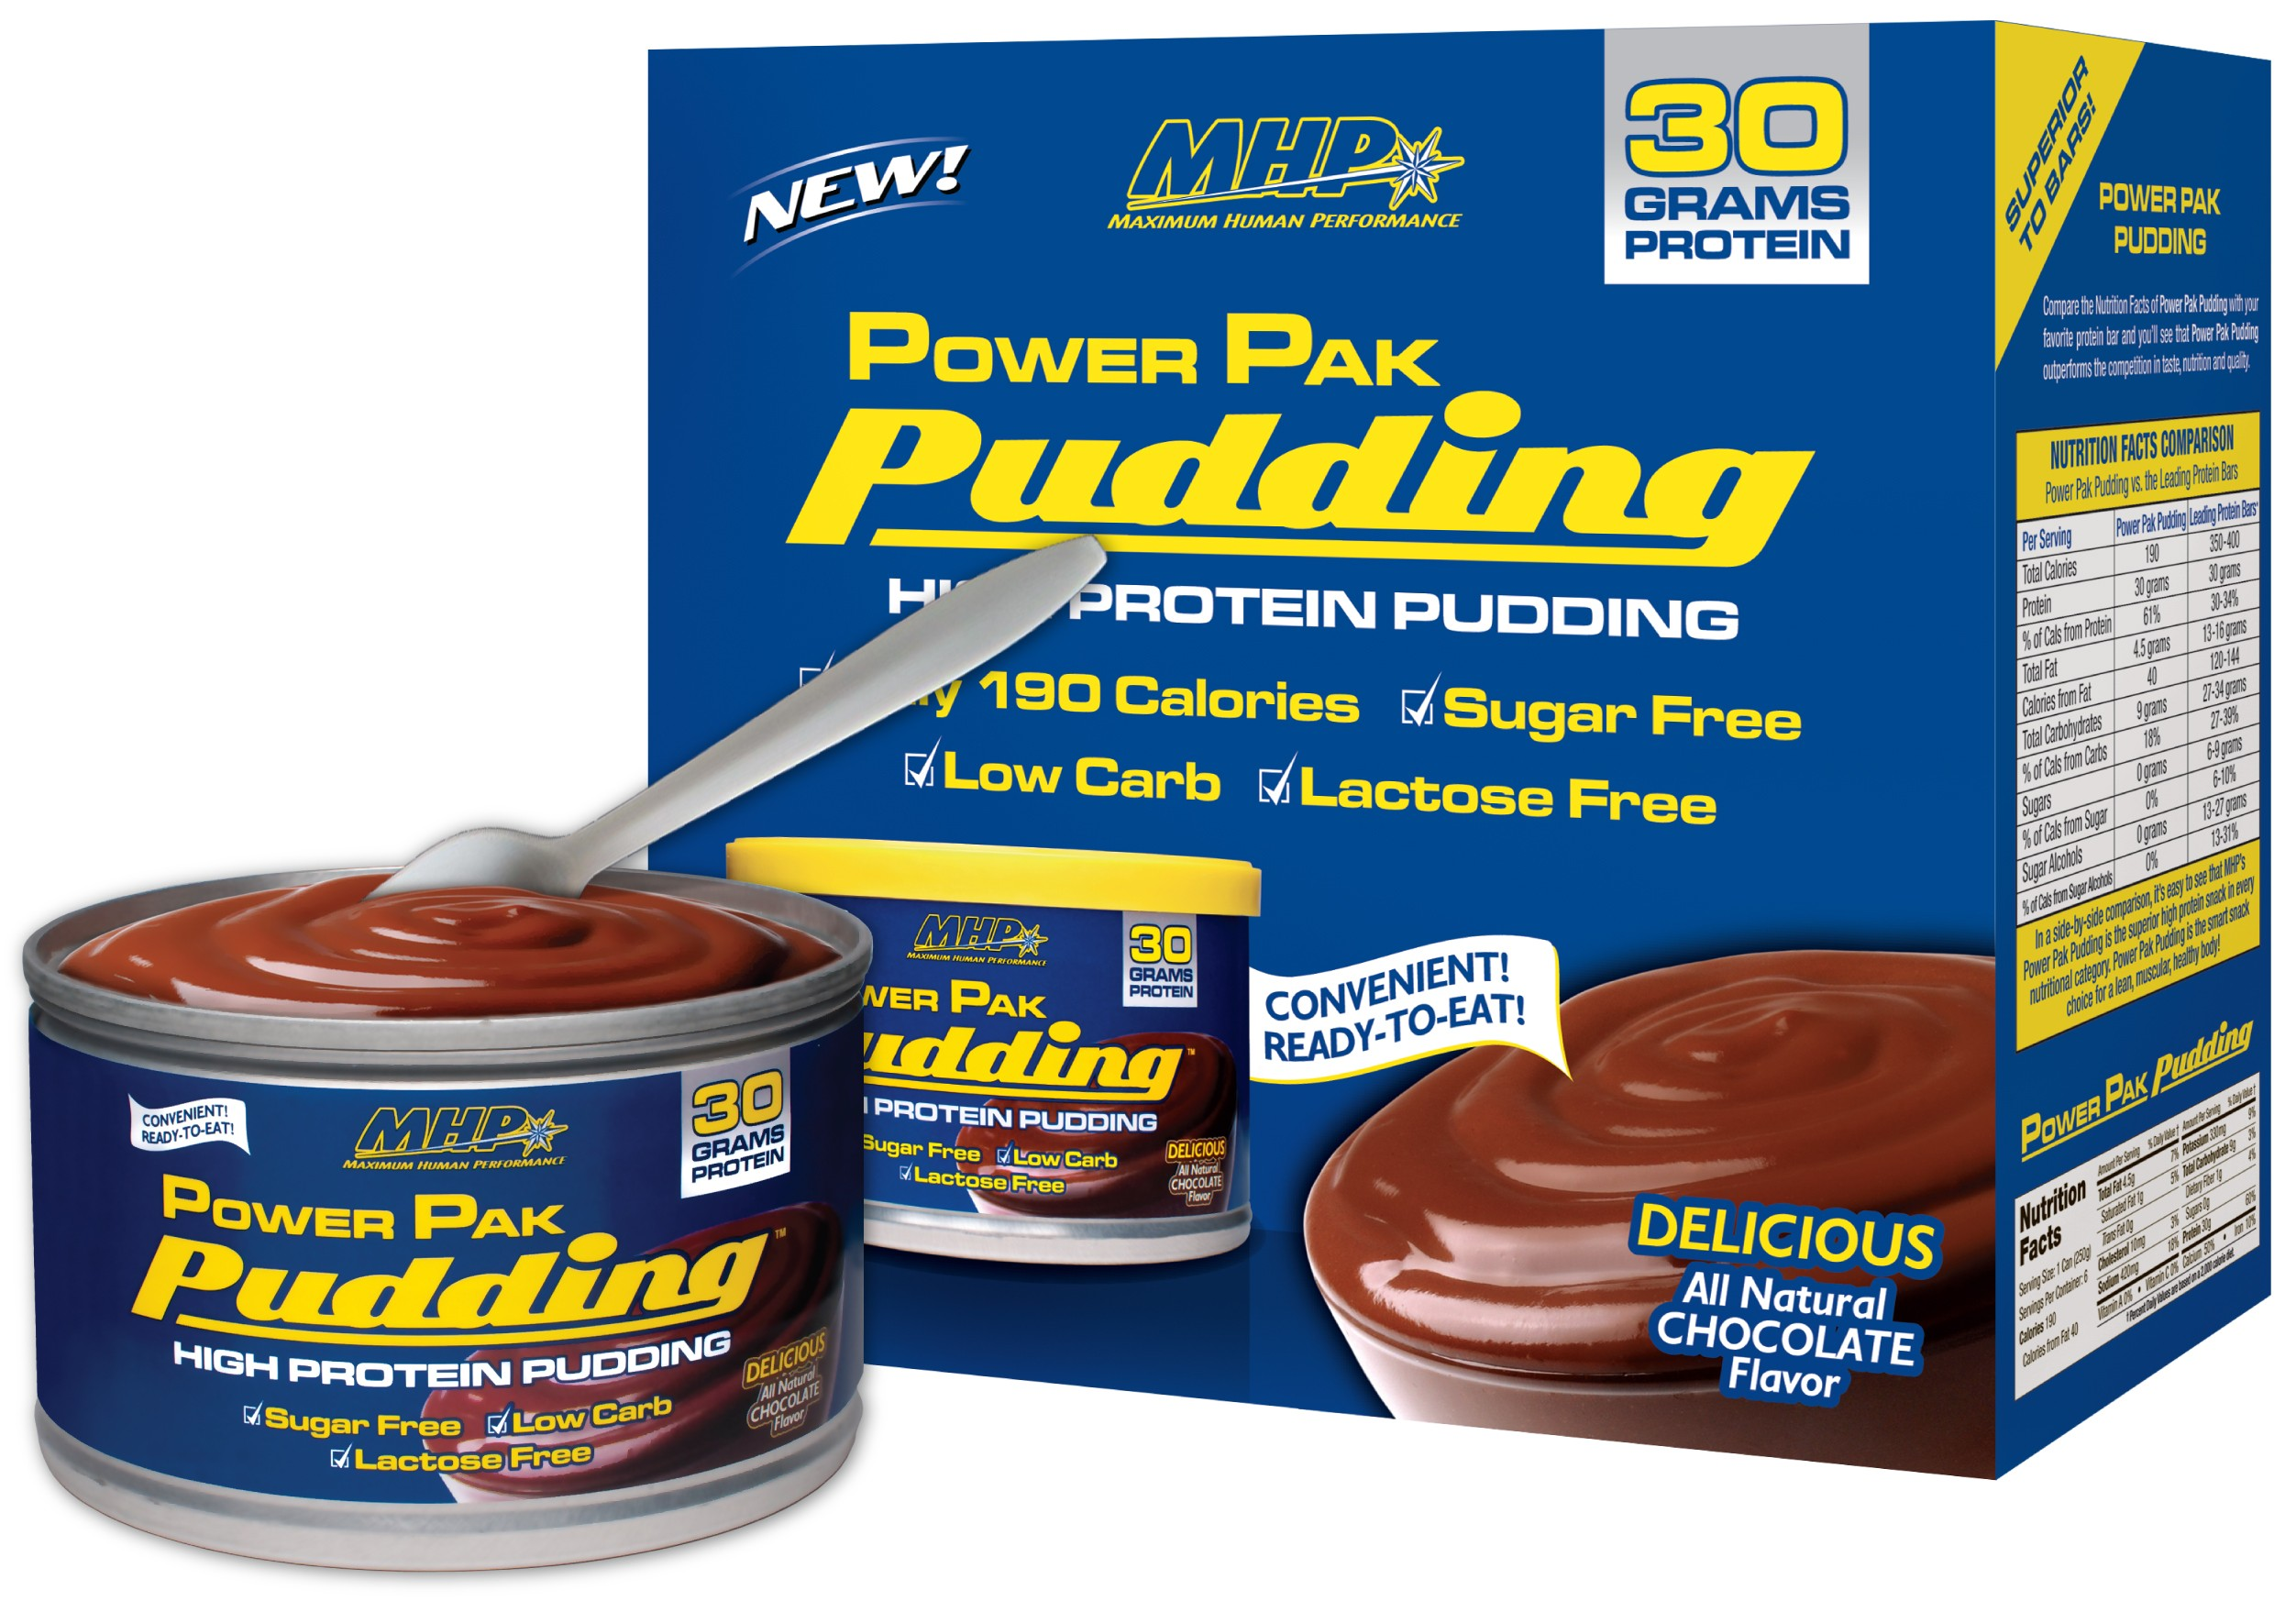 Power Pak Pudding от Power-Way